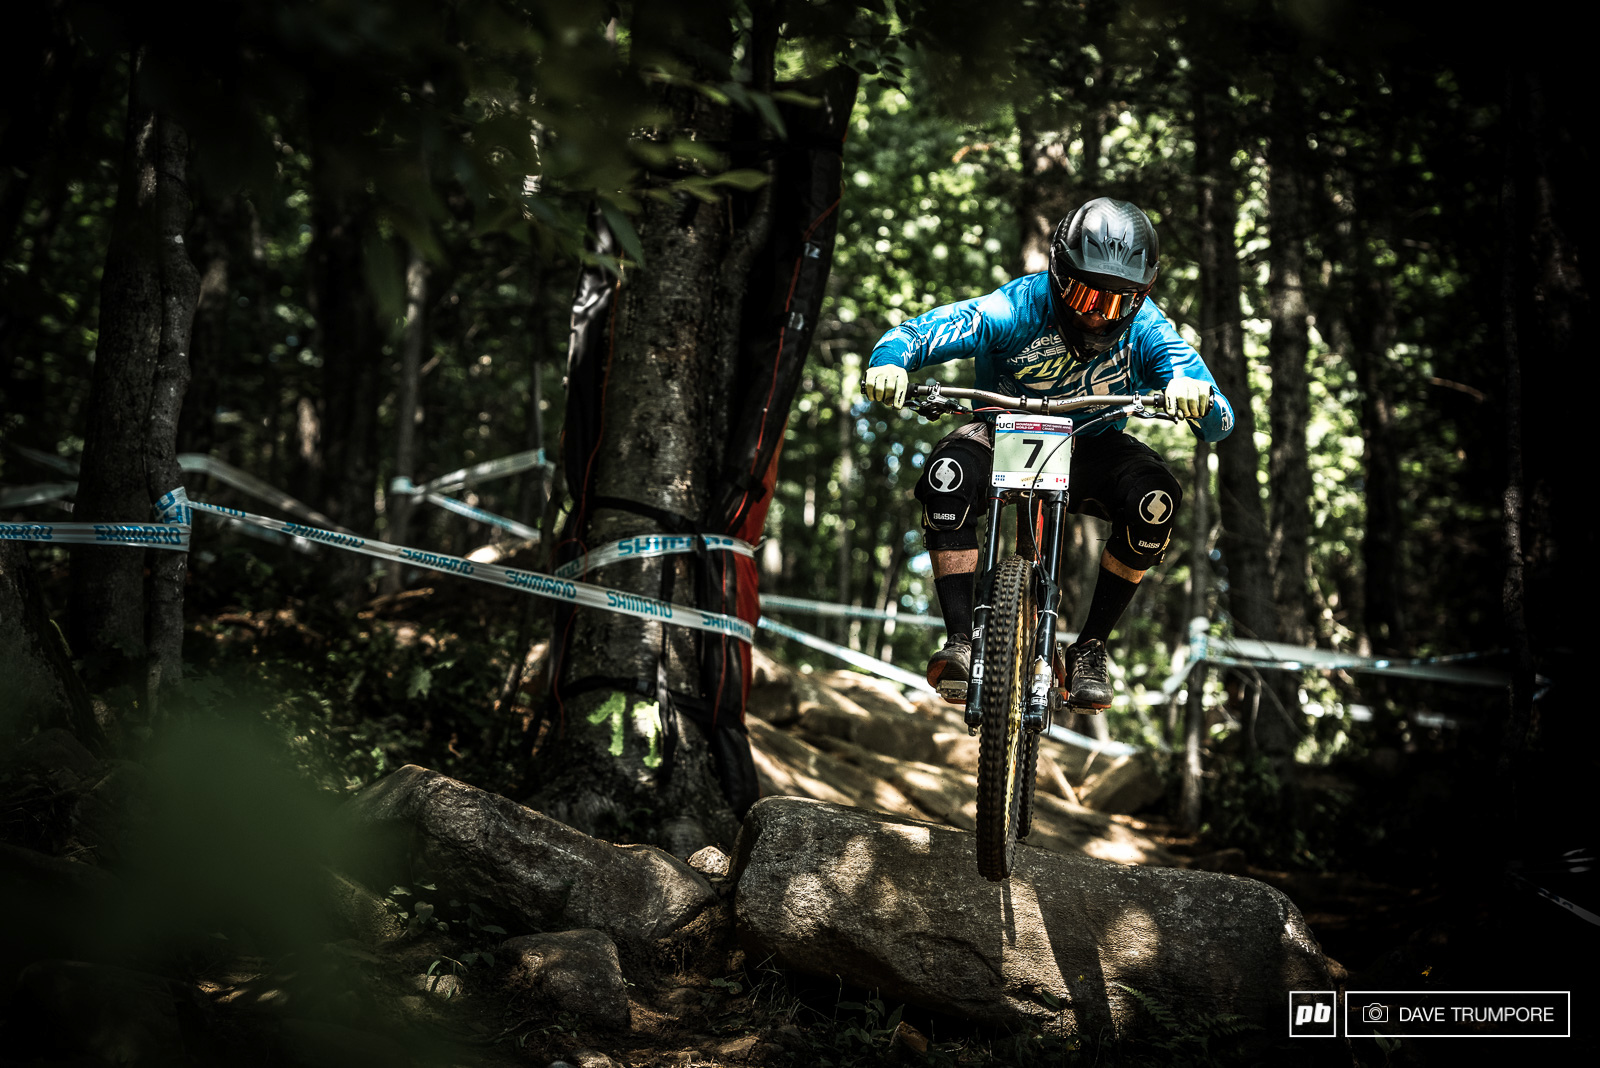 Sylvain Cougoureux has been moving up the ranks in the junior series each race and is looking fast here in MSA.